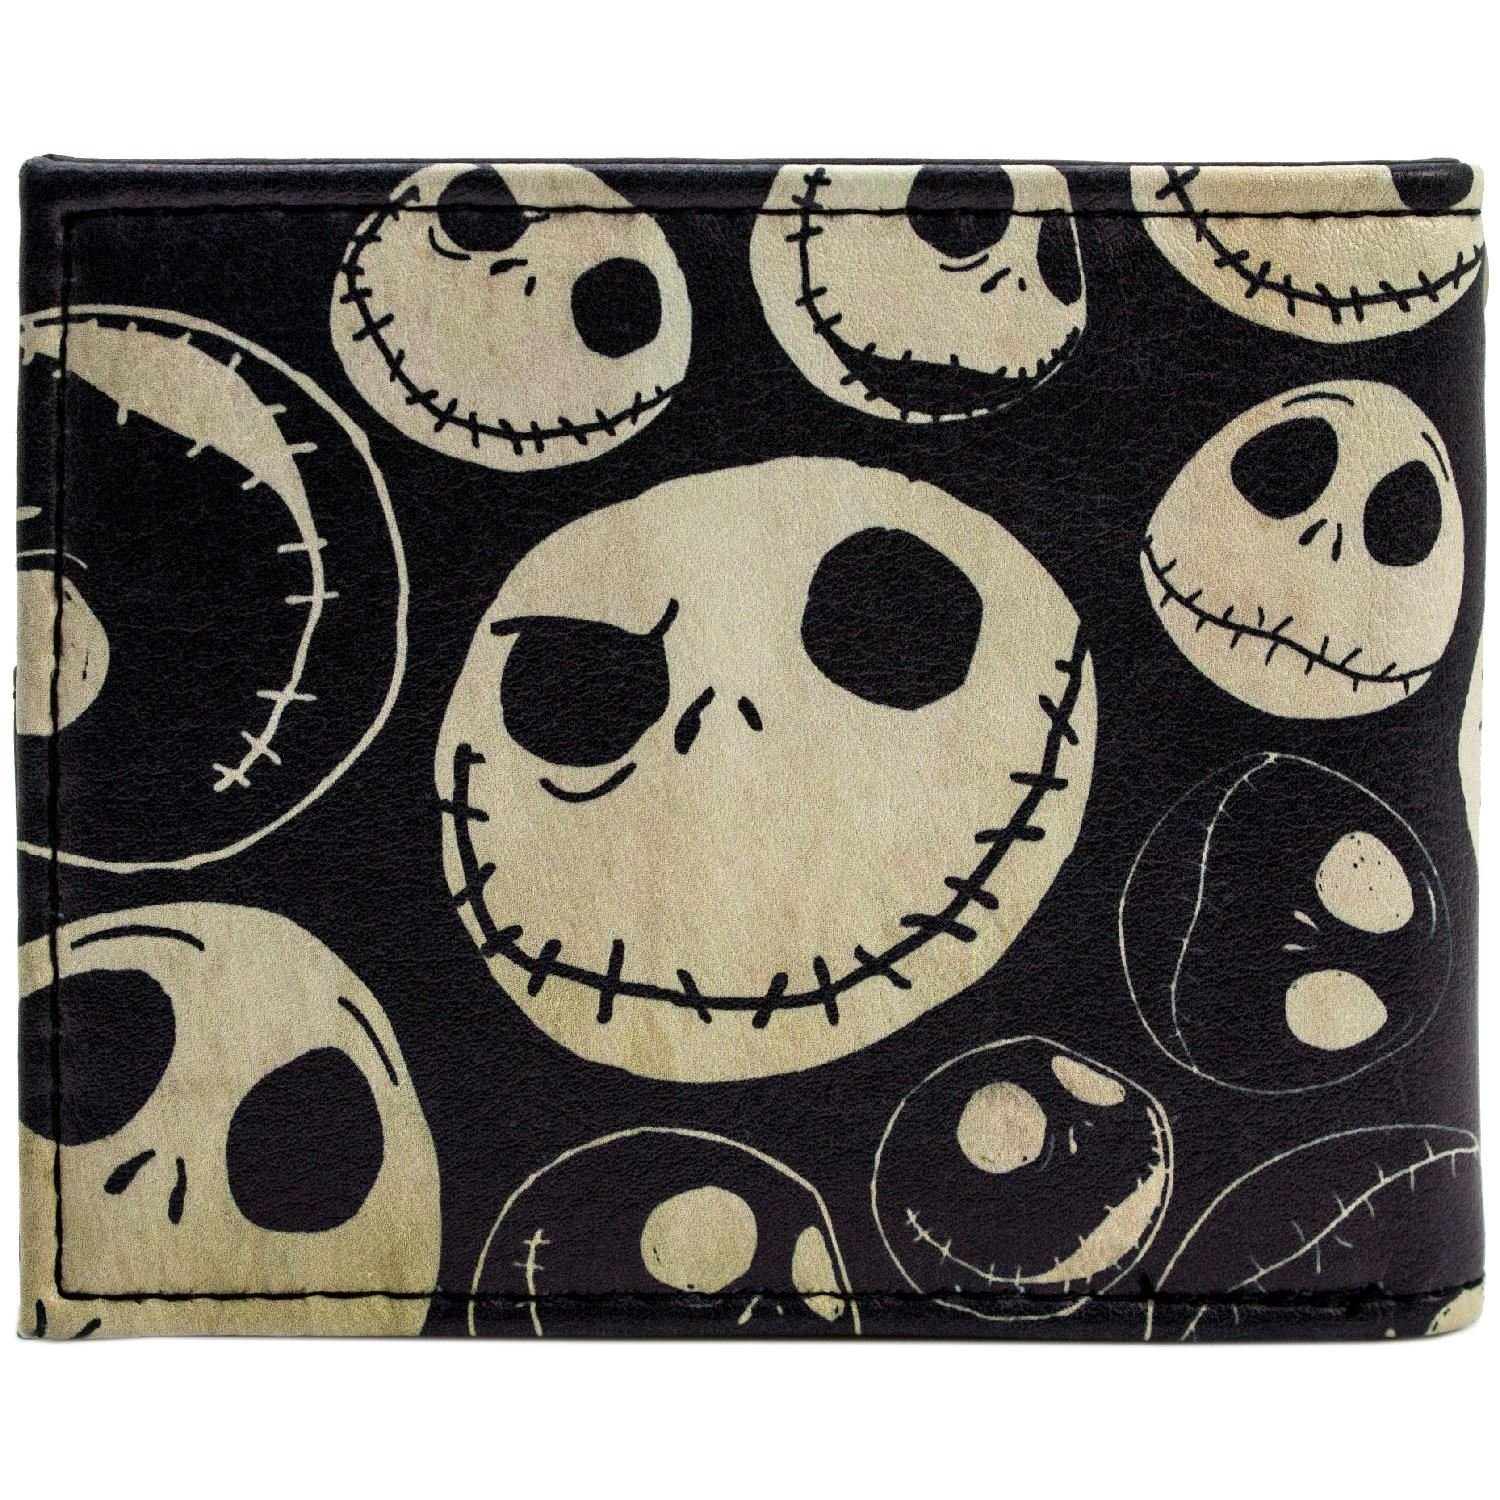 Cartera de Tim Burton Nightmare Before Christmas Viejo estilo Jack Negro